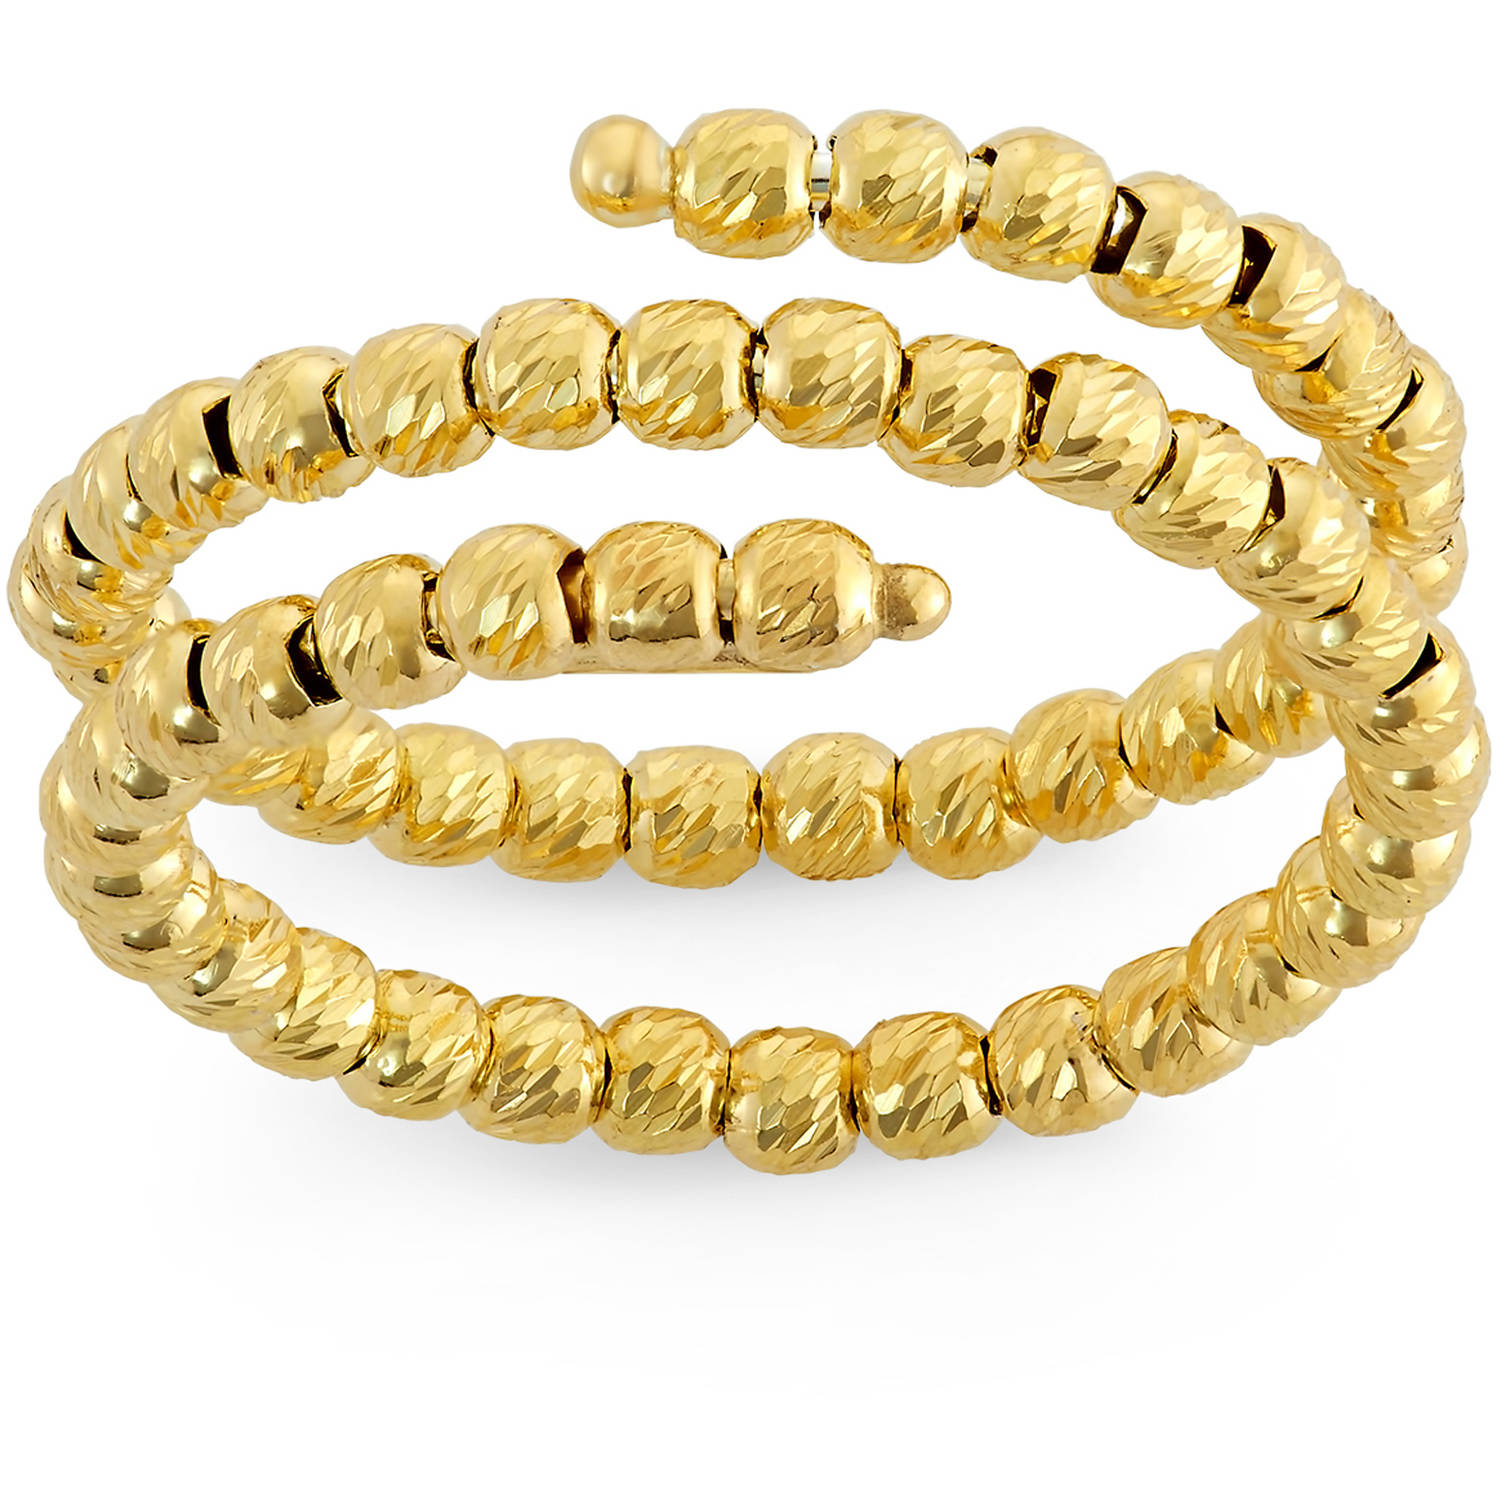 Giuliano Mameli 14kt Gold-Plated Sterling Silver DC Bead Ring